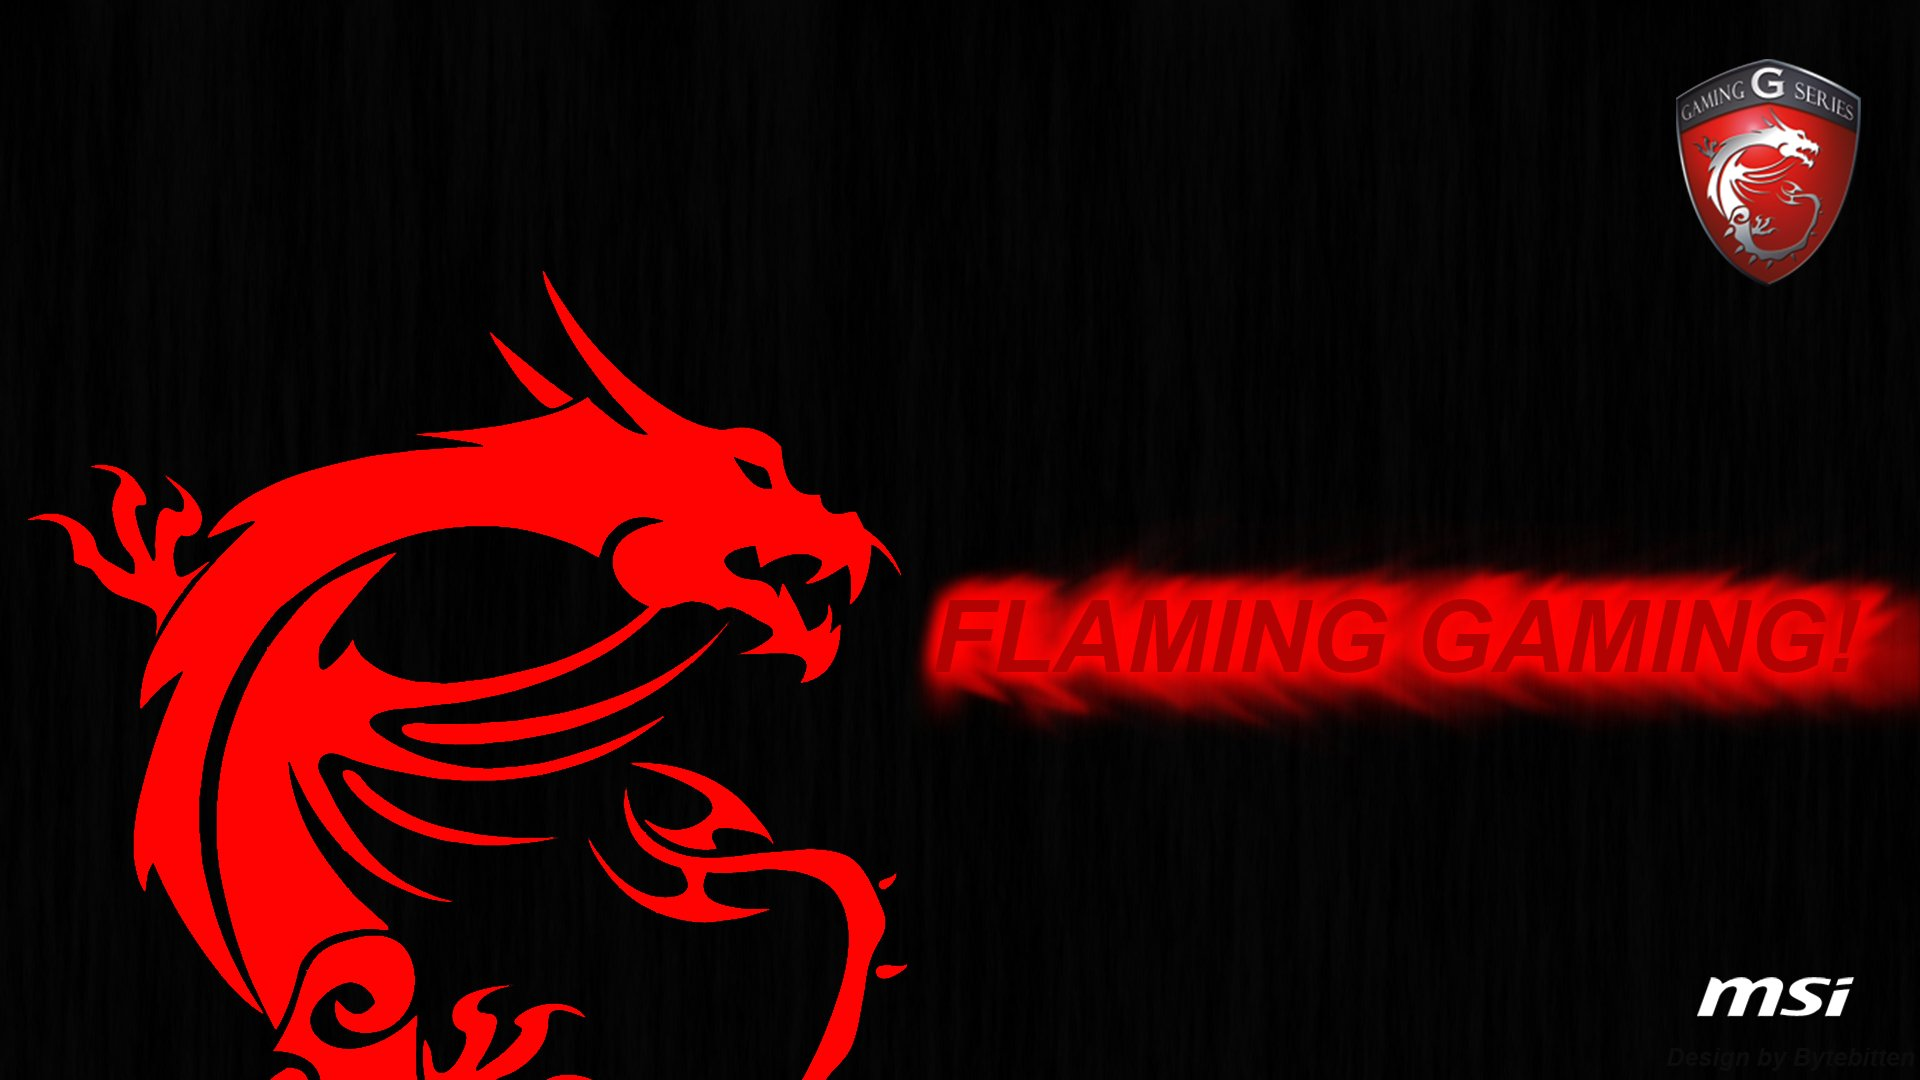 msi gaming wallpaper hd